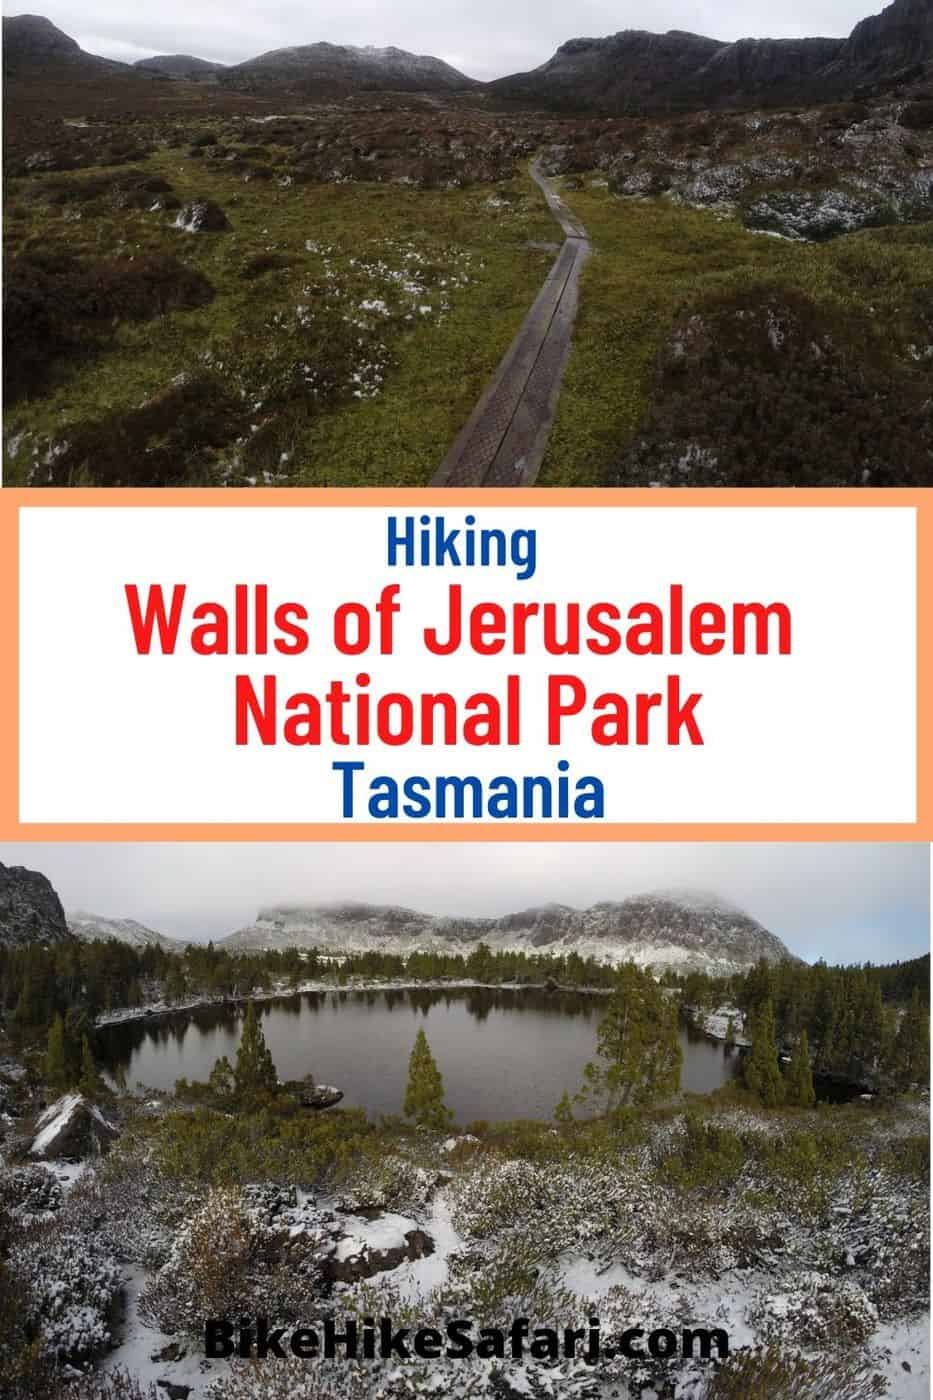 Hiking Walls of Jerusalem National Park Tasmania